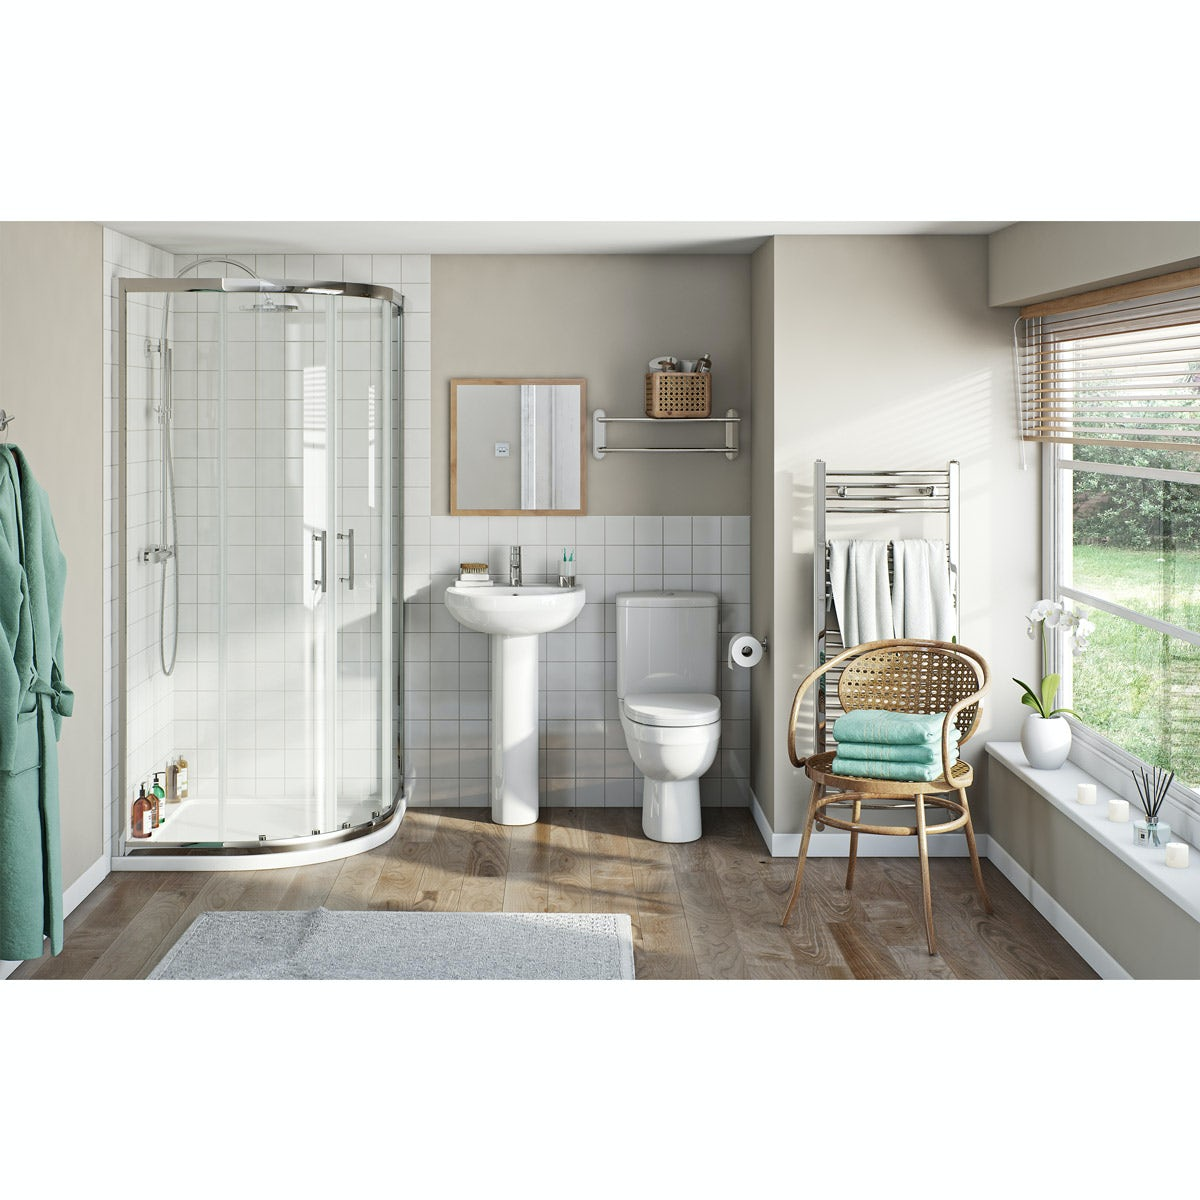 Orchard Eden ensuite with quadrant enclosure and tray 800 x 800